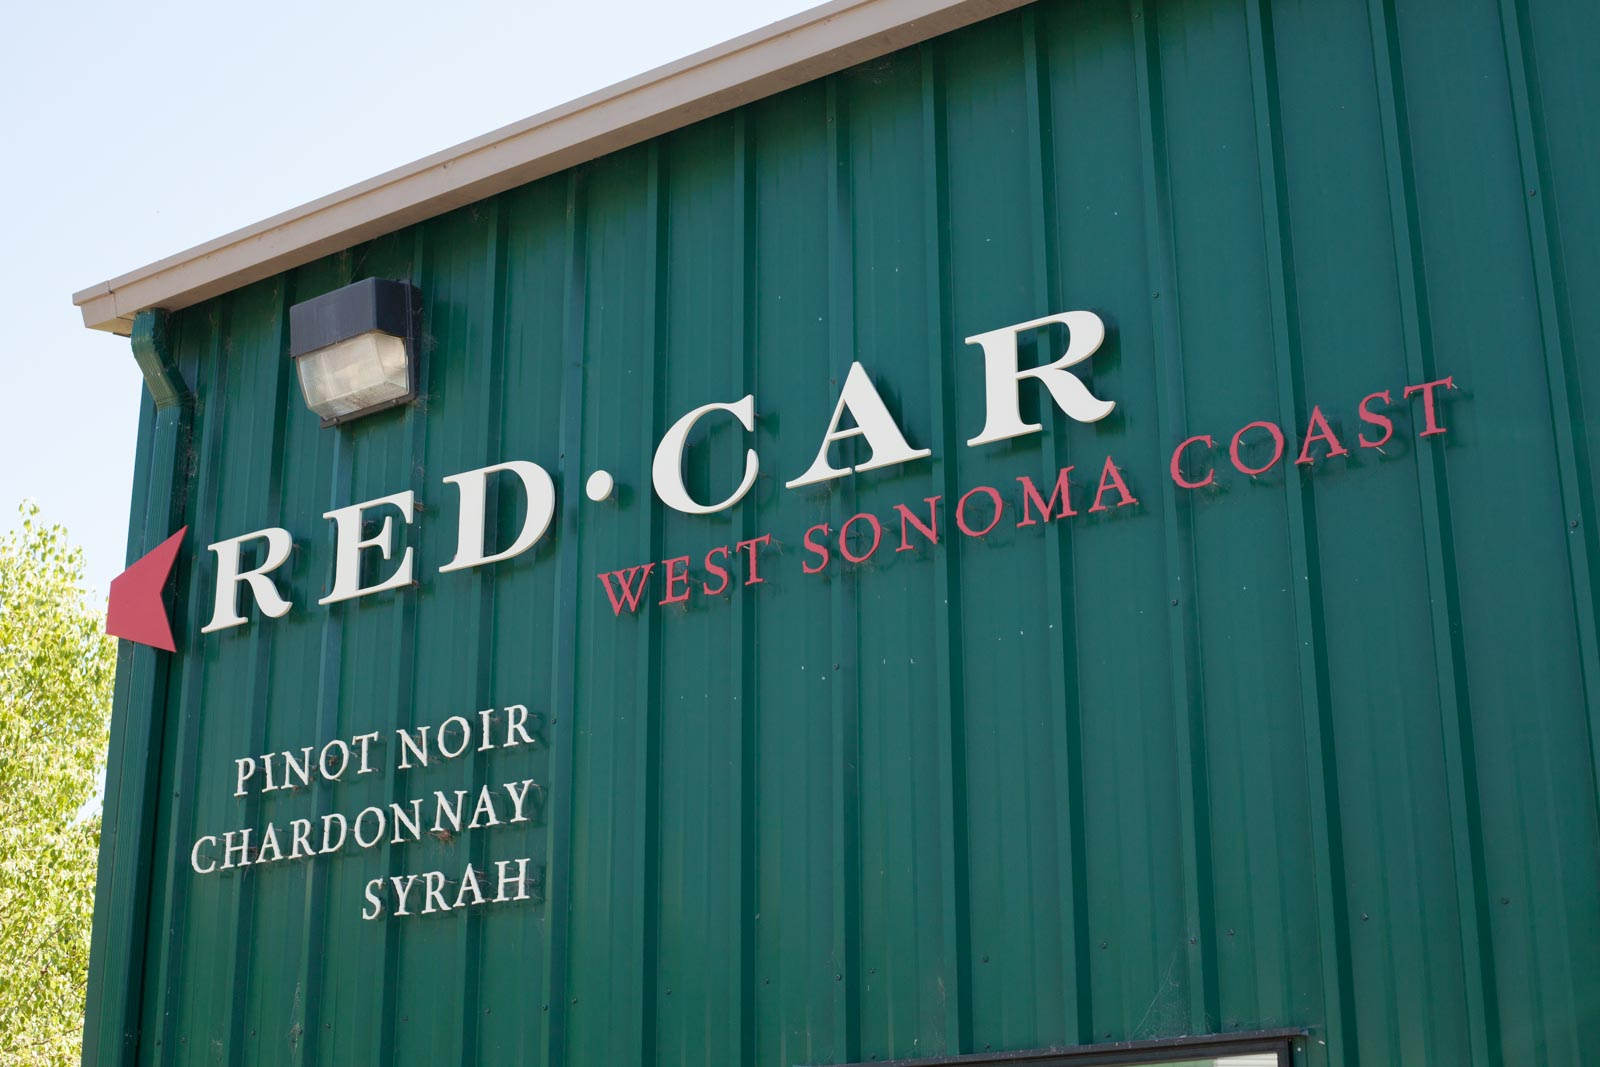 The entrance to the Red Car Wines tasting room. ©Kevin Day / Opening a Bottle